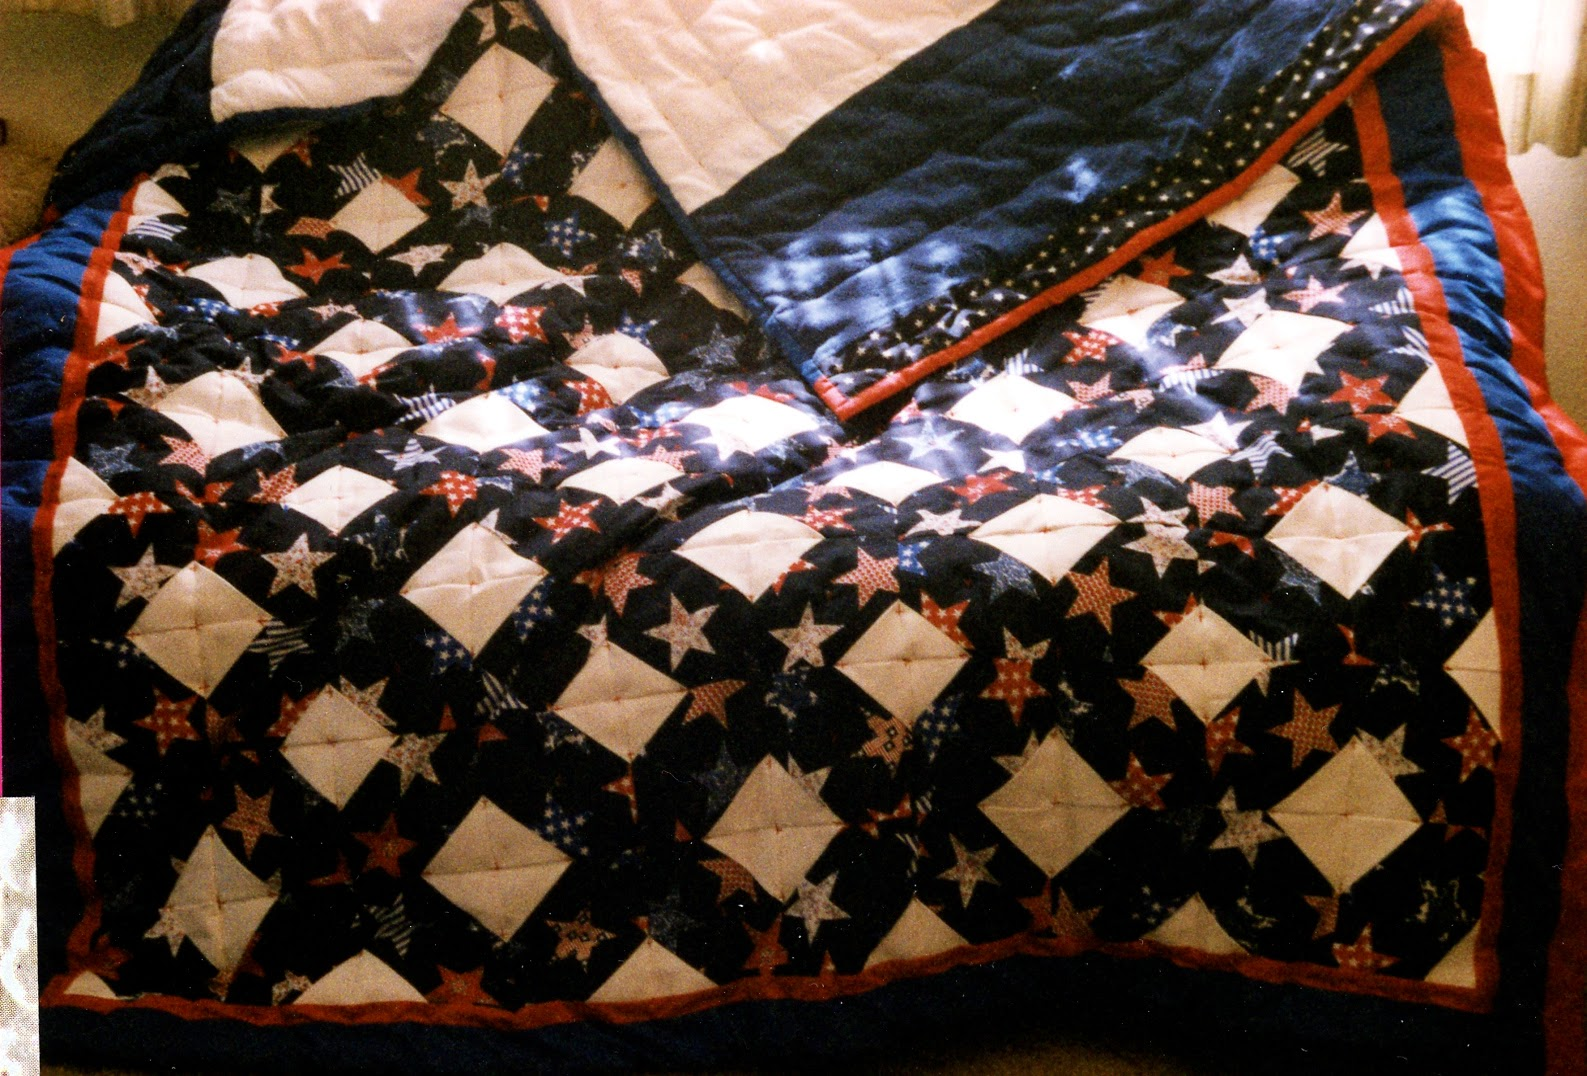 Another Patriotic Wedding quilt